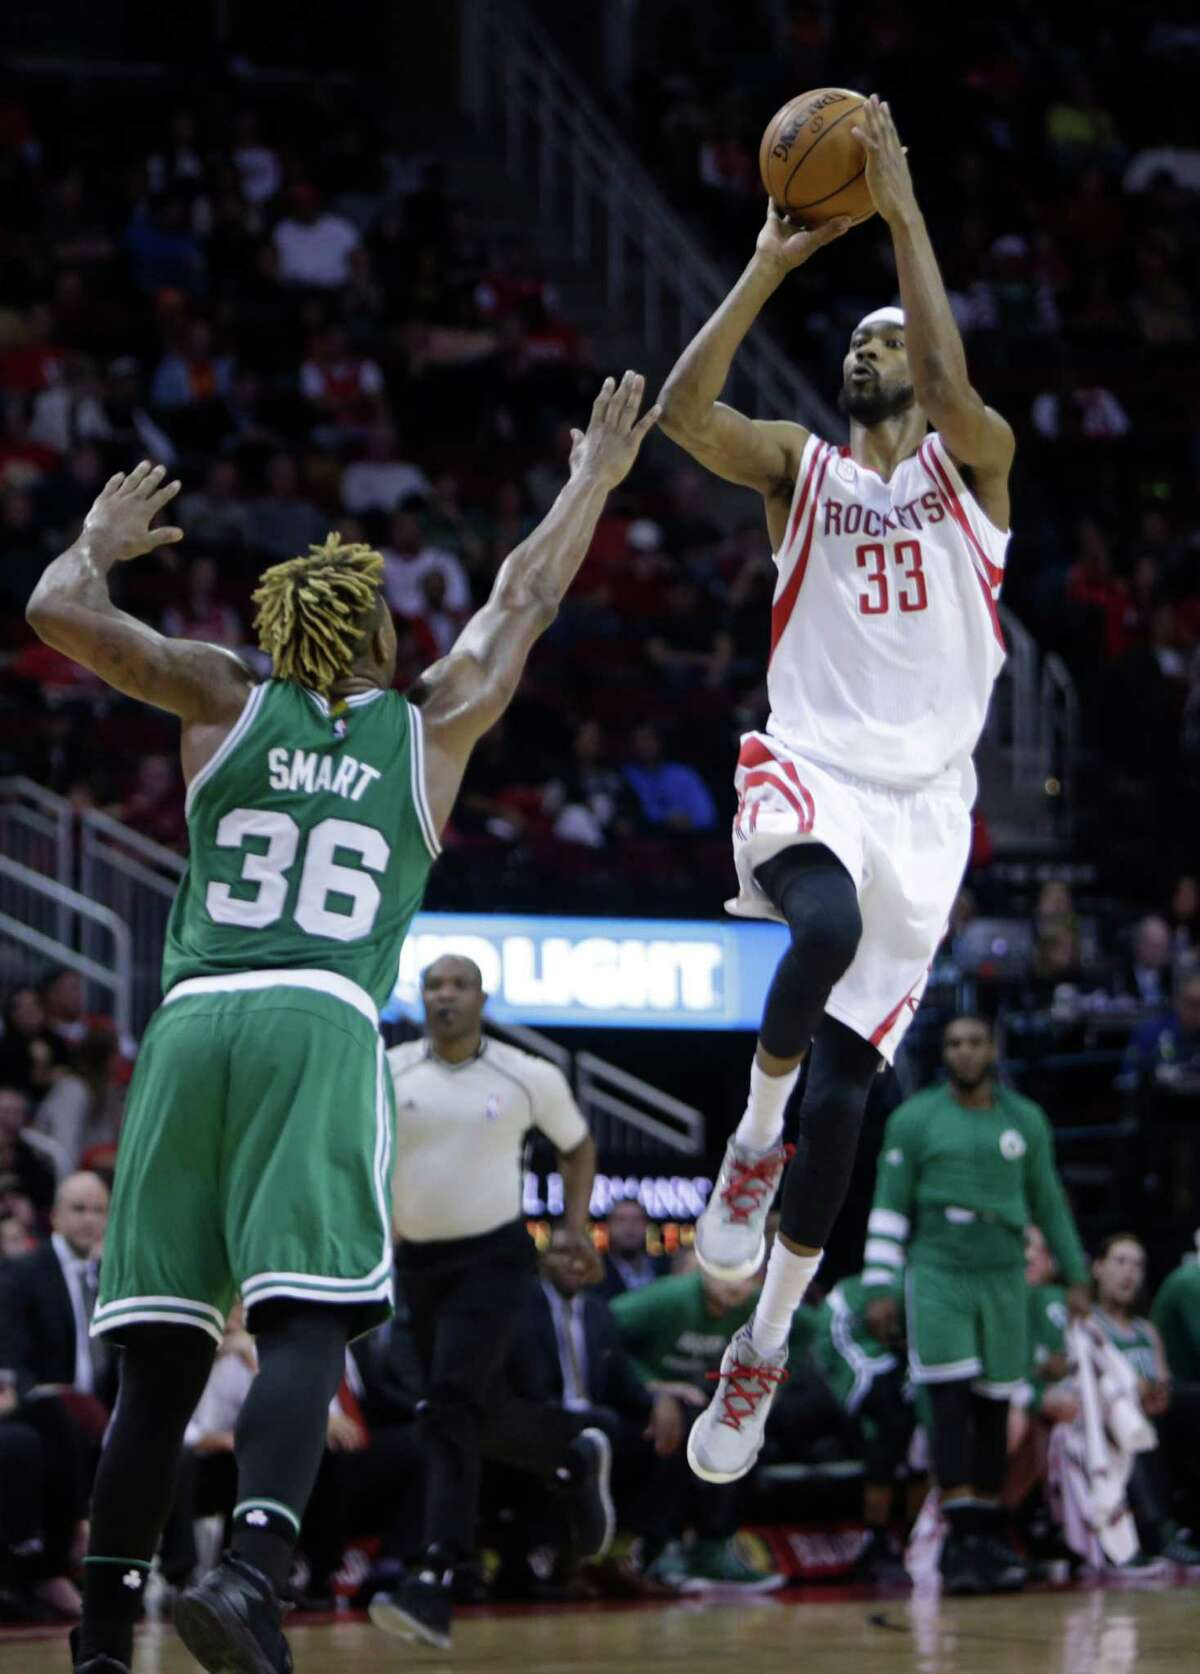 Houston Rockets forward Corey Brewer (33) shoots over Boston Celtics guard Marcus Smart (36) during the Rockets game against the Boston Celtics at Toyota Center, Monday, Dec. 5, 2016, in Houston.